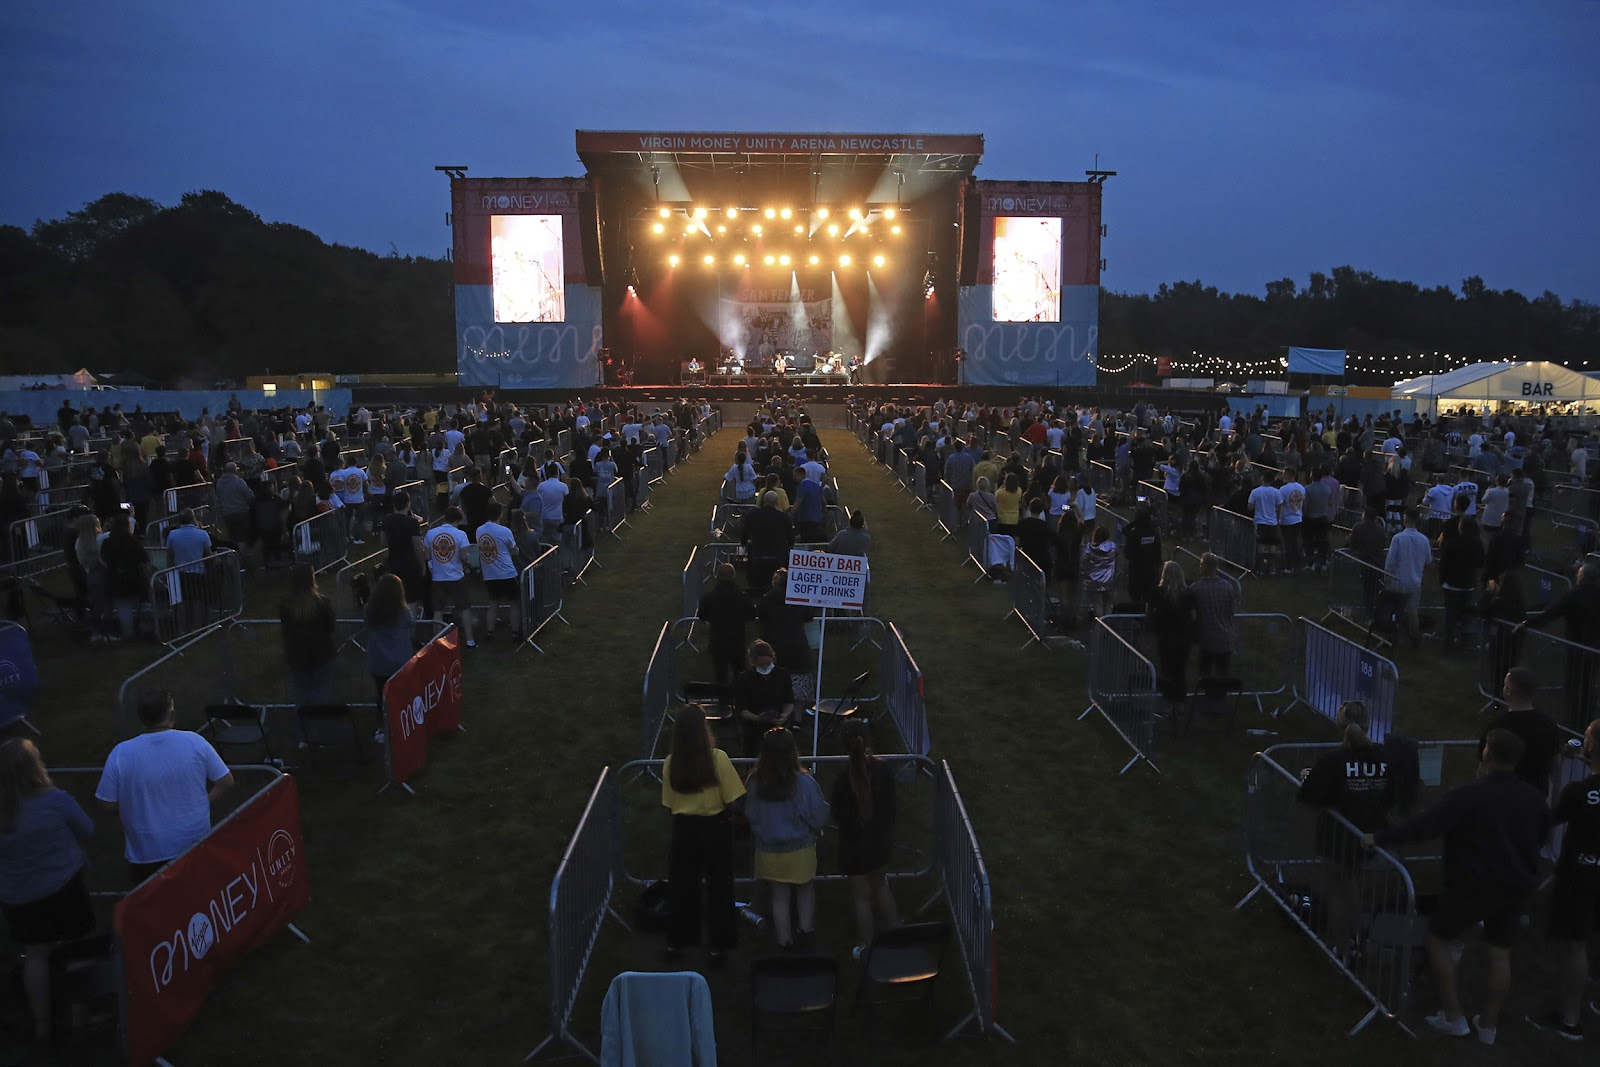 UK social distancing concert offers glimpse at future of events